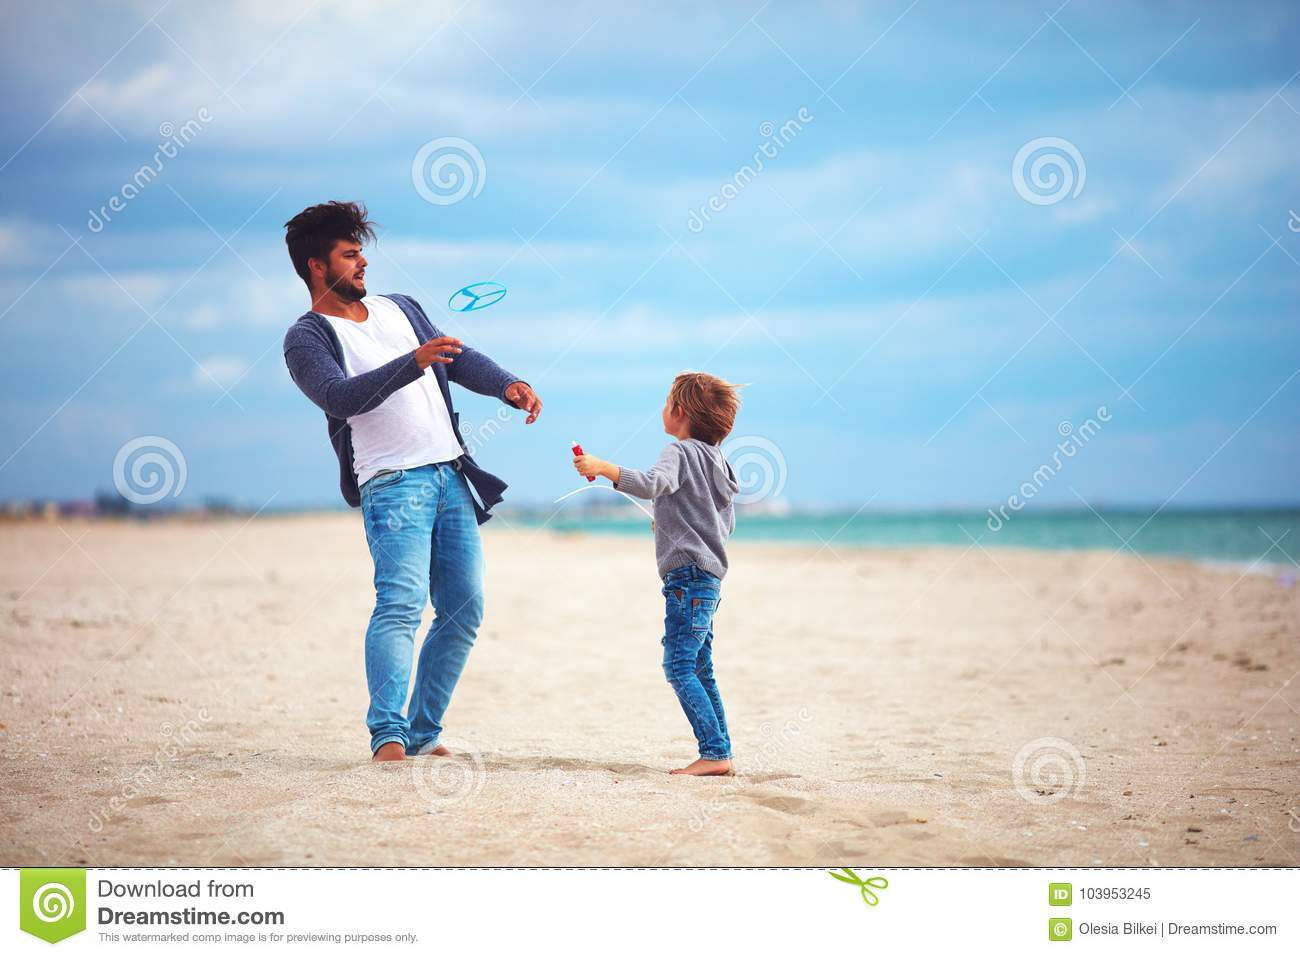 Happy father and son having fun on the beach, playing summer activity games, launching propeller toy in the air